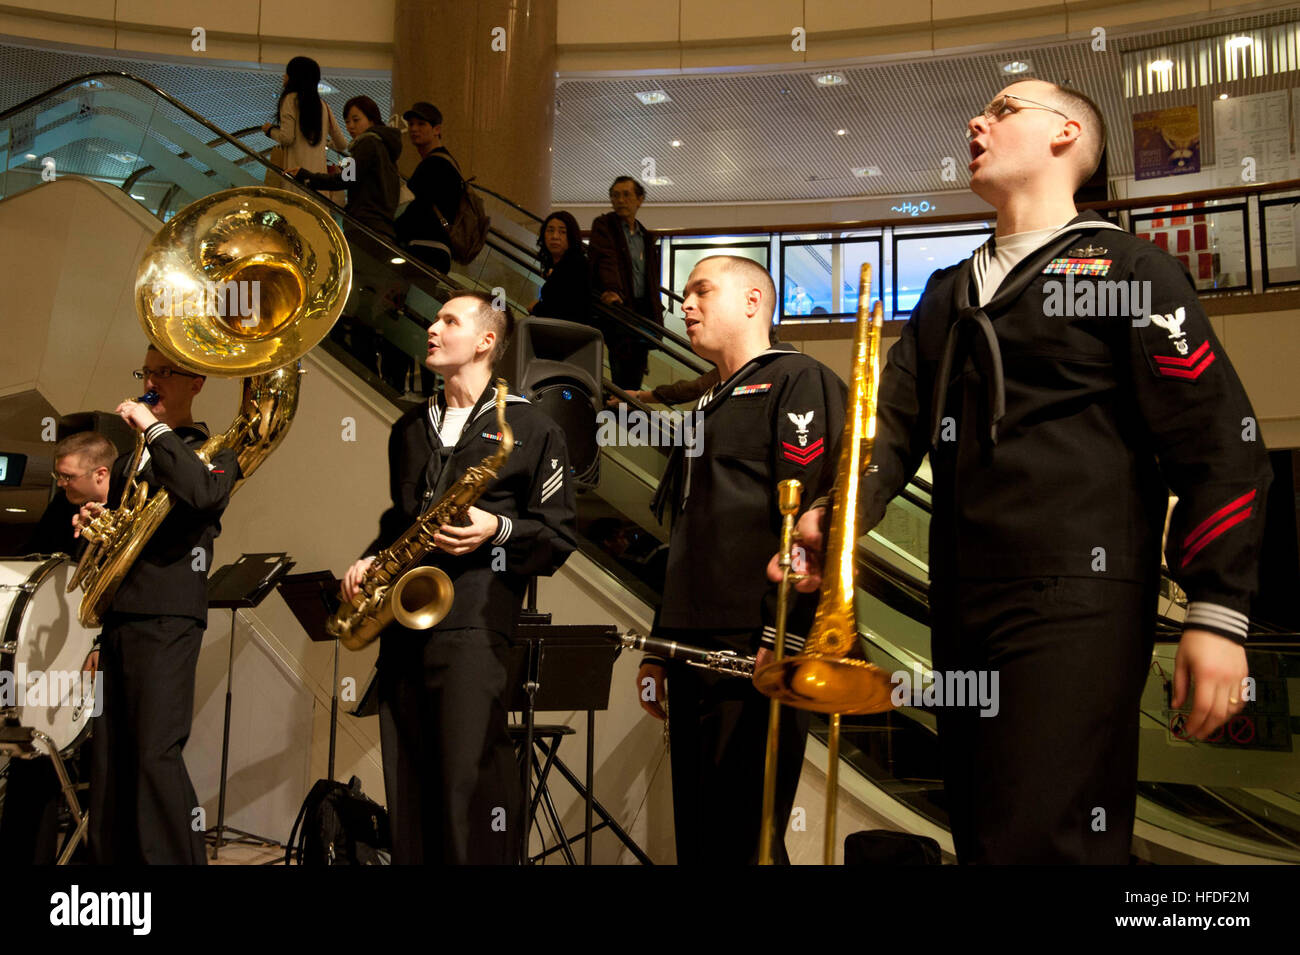 U.S. 7th Fleet Band members perform for locals at the Harbour City Mall in Hong Kong. Sailors from the U.S. 7th Stock Photo